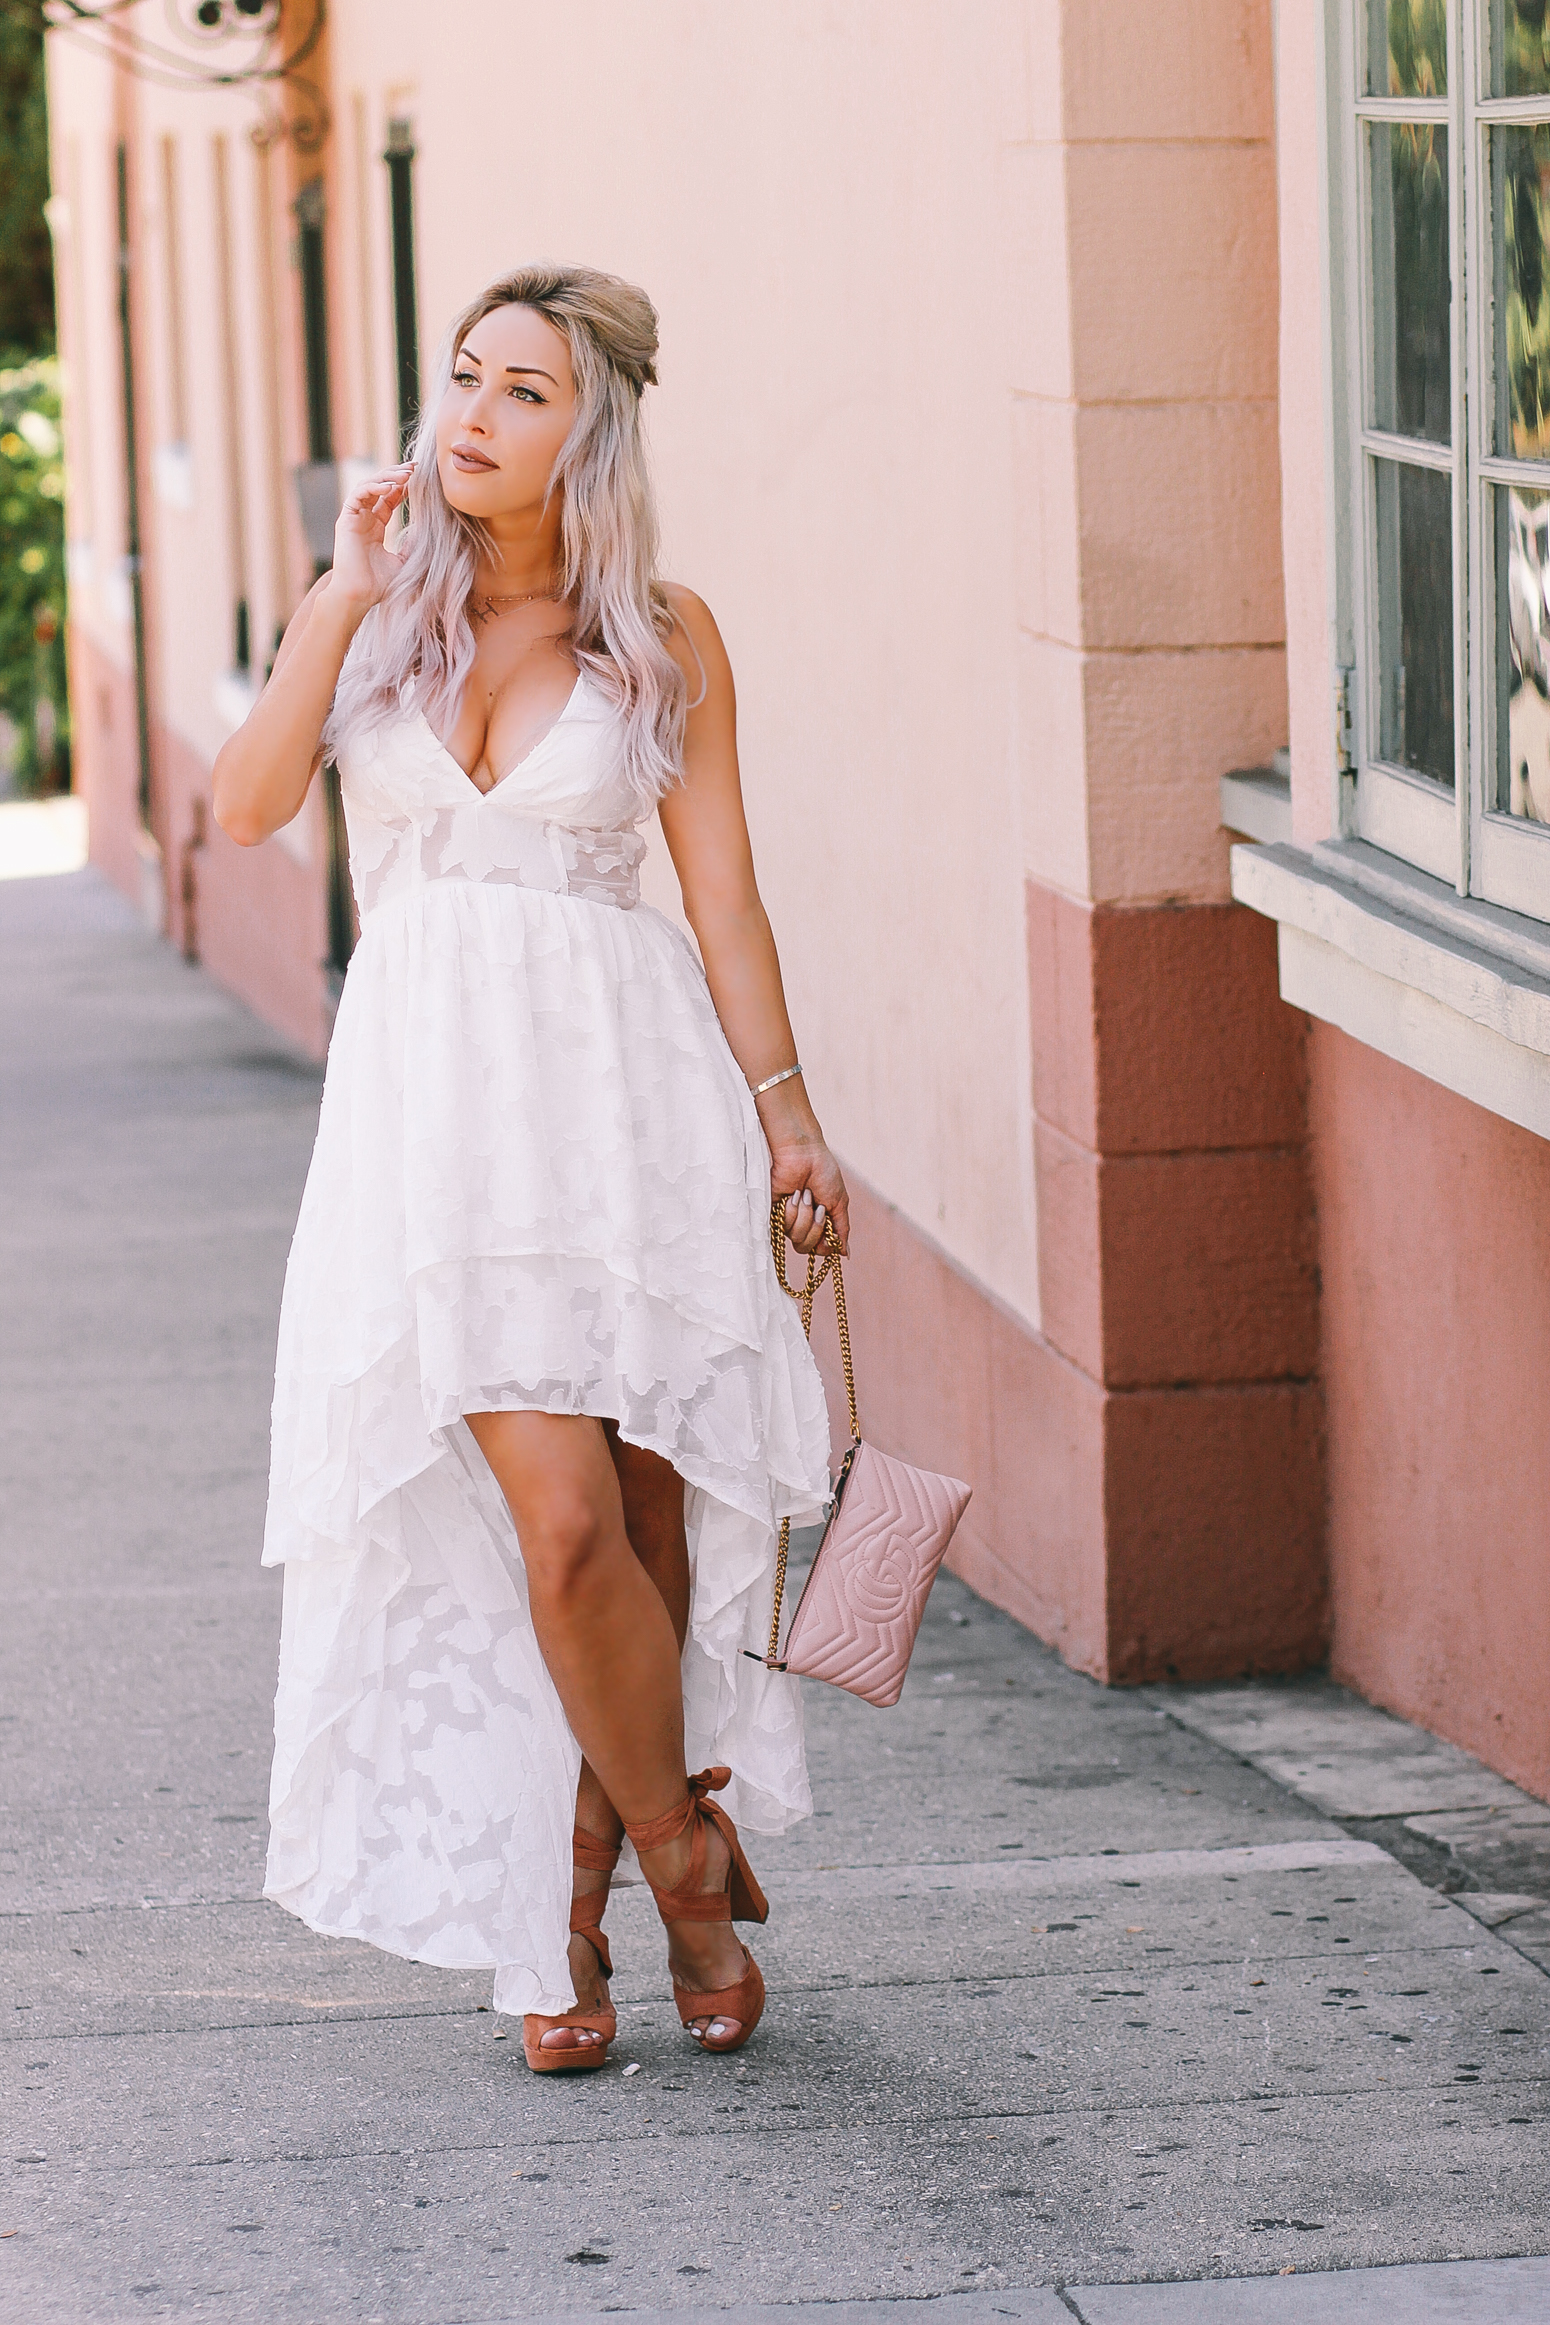 Blondie in the City | White Lace High-Low Dress | White Bridal Shower Dress